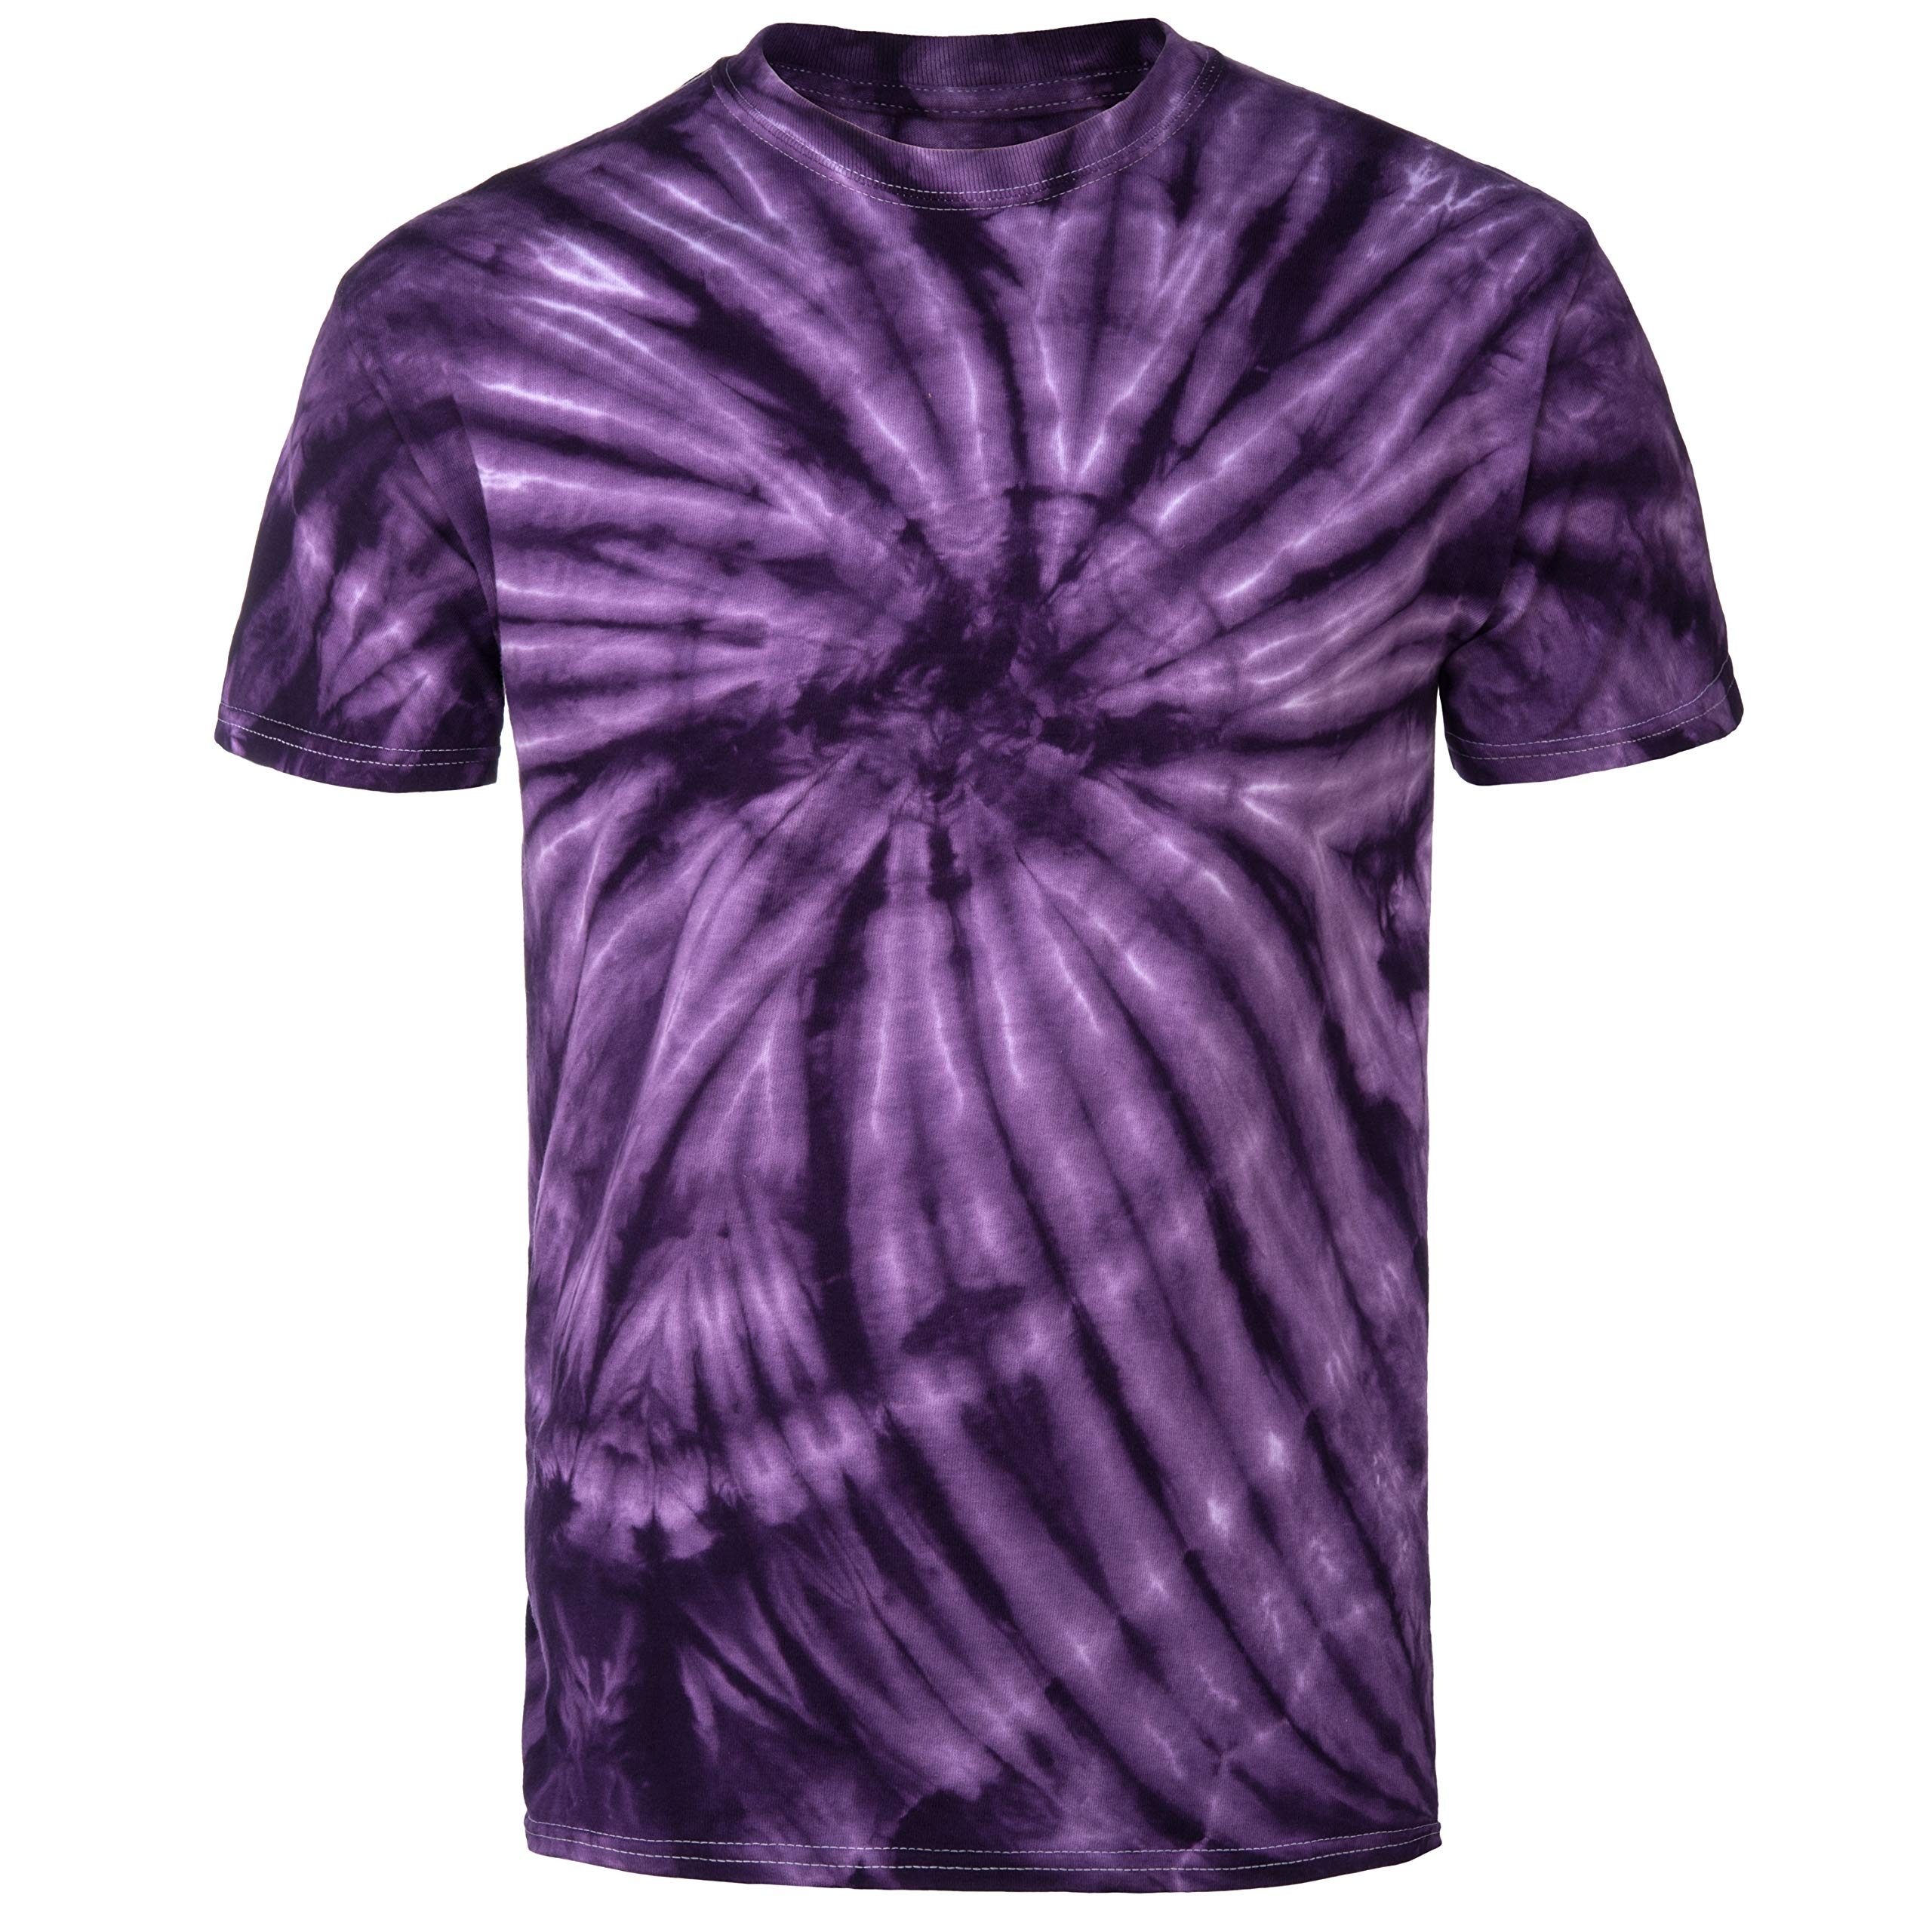 5d8ad60d Magic River Handcrafted Tie Dye T Shirts - 11 Youth and Adult Sizes - 15  Color